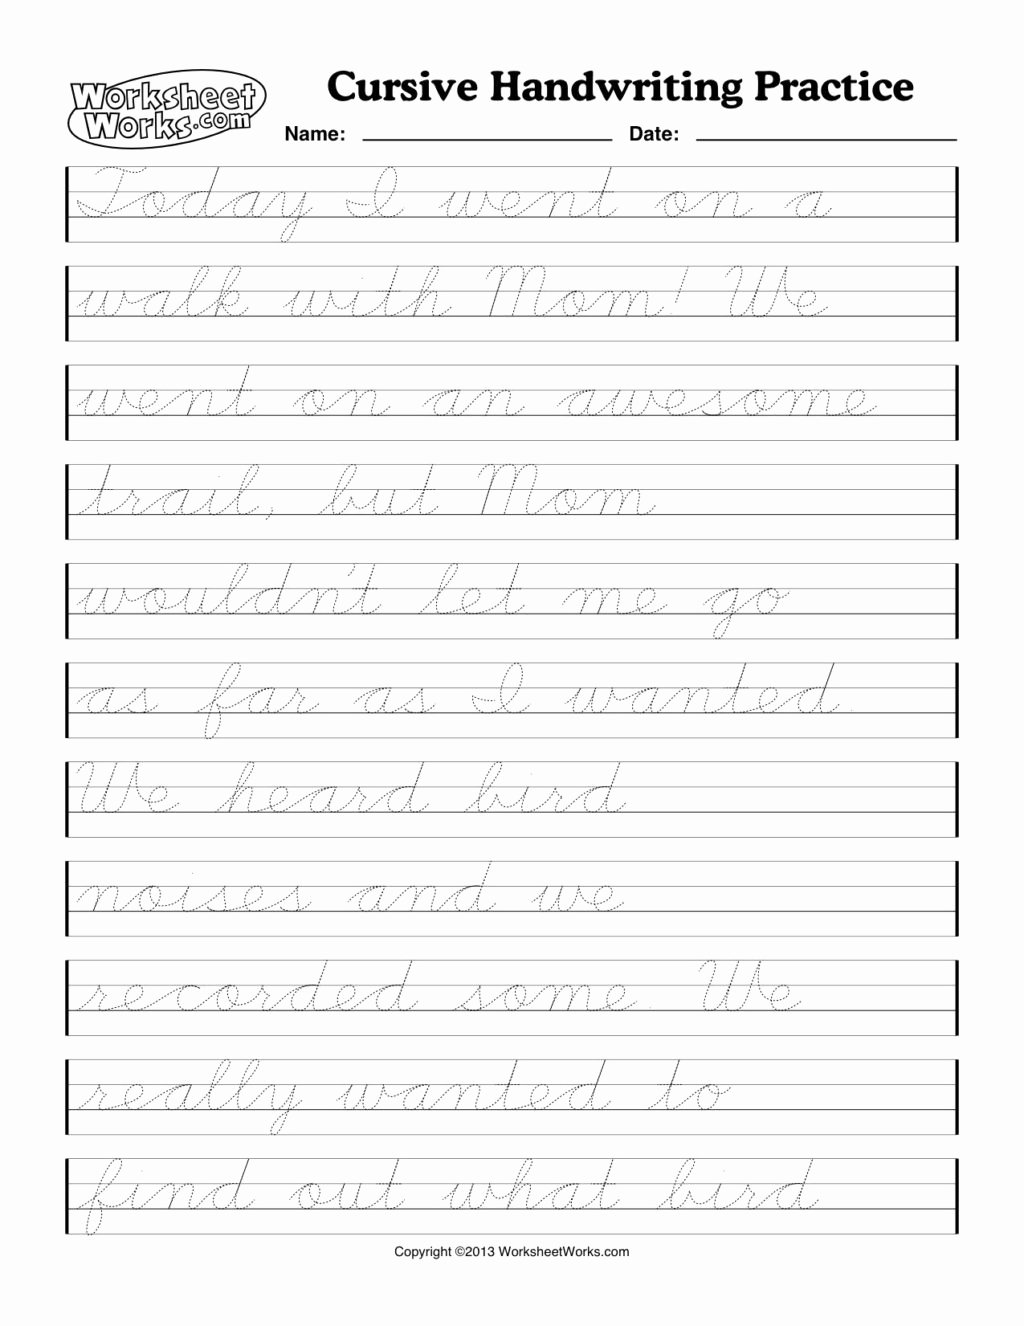 Practice Handwriting Worksheets for Preschoolers Ideas 45 Amazing Handwriting Practice Worksheets Printable Picture